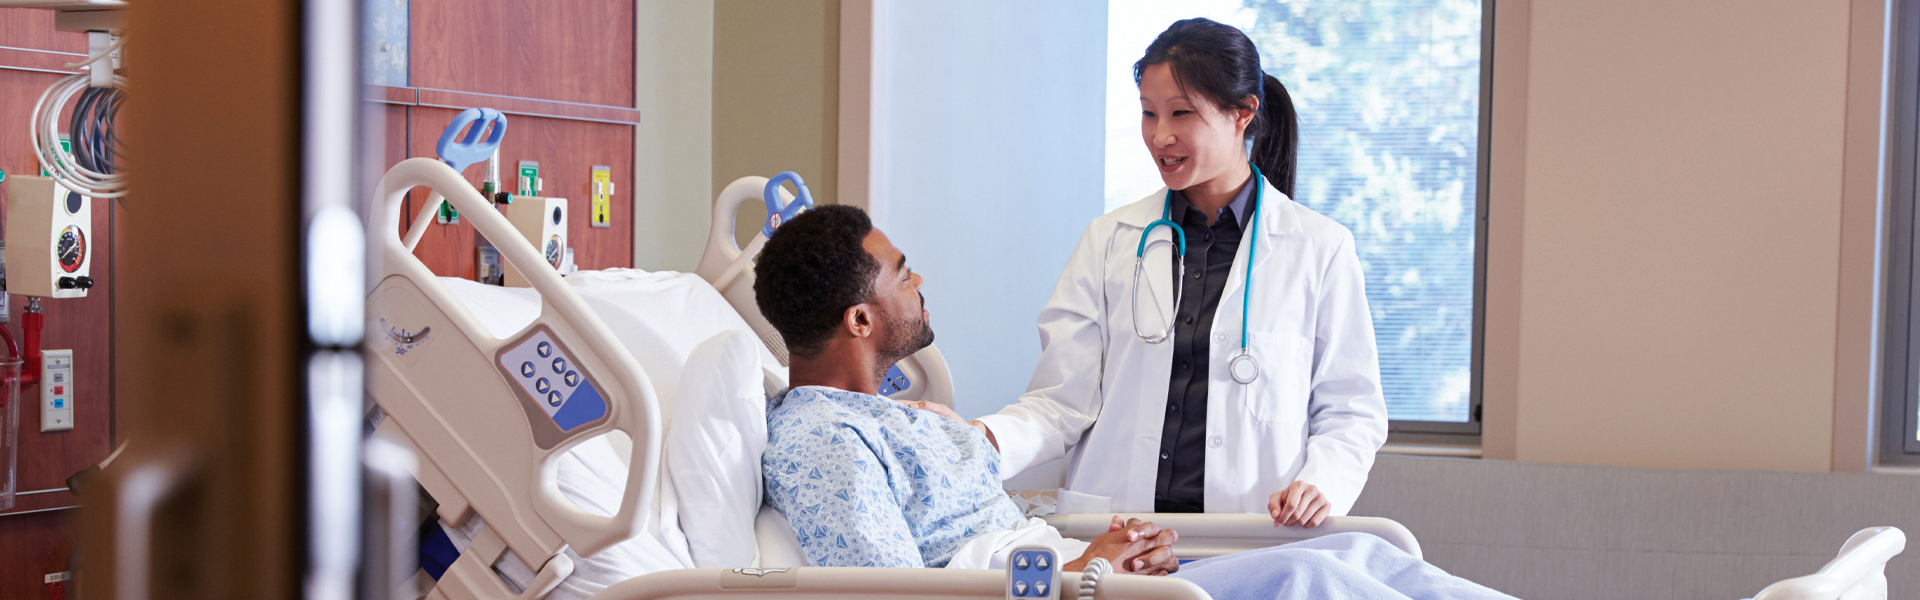 Diagnostic and Emergency Treatment Helps Patients Prevent Hospitalizations